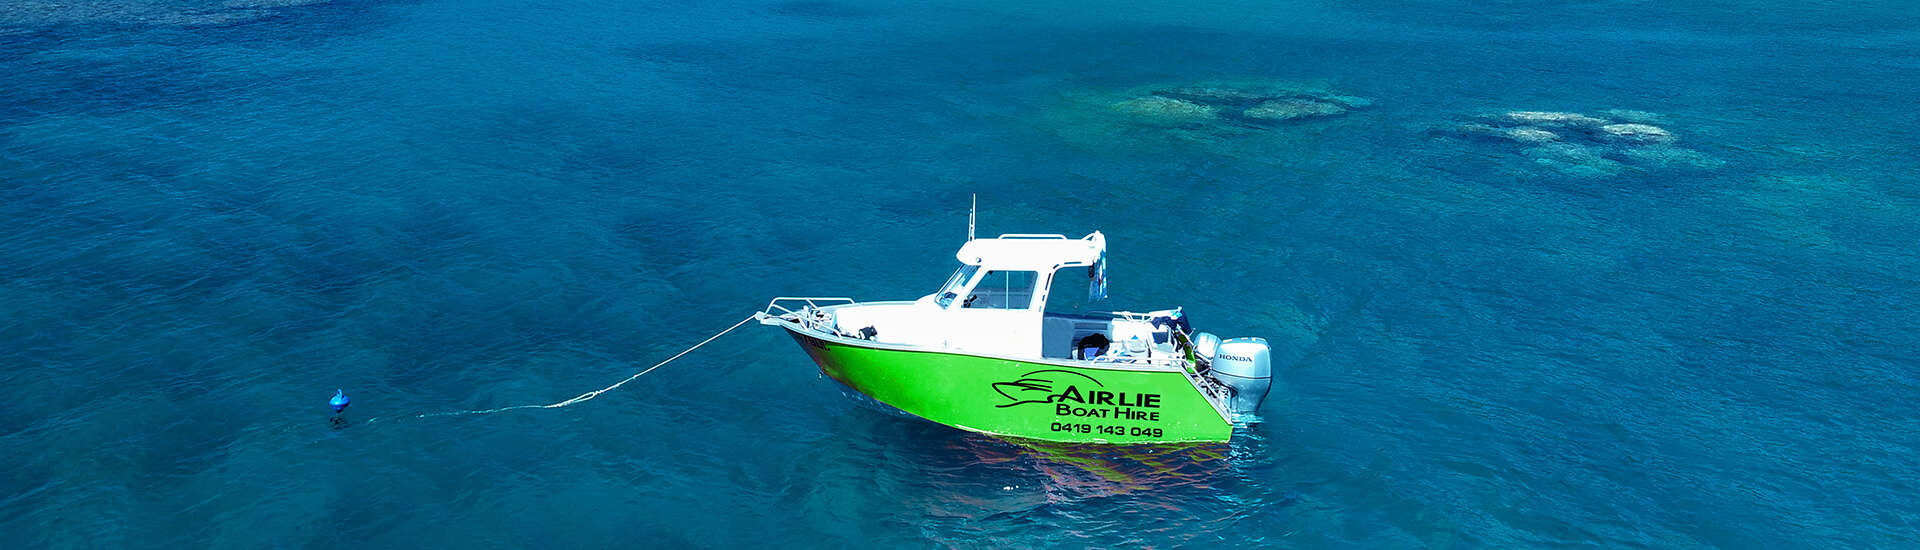 Powerboat-hire-whitsundays-airlie-beach